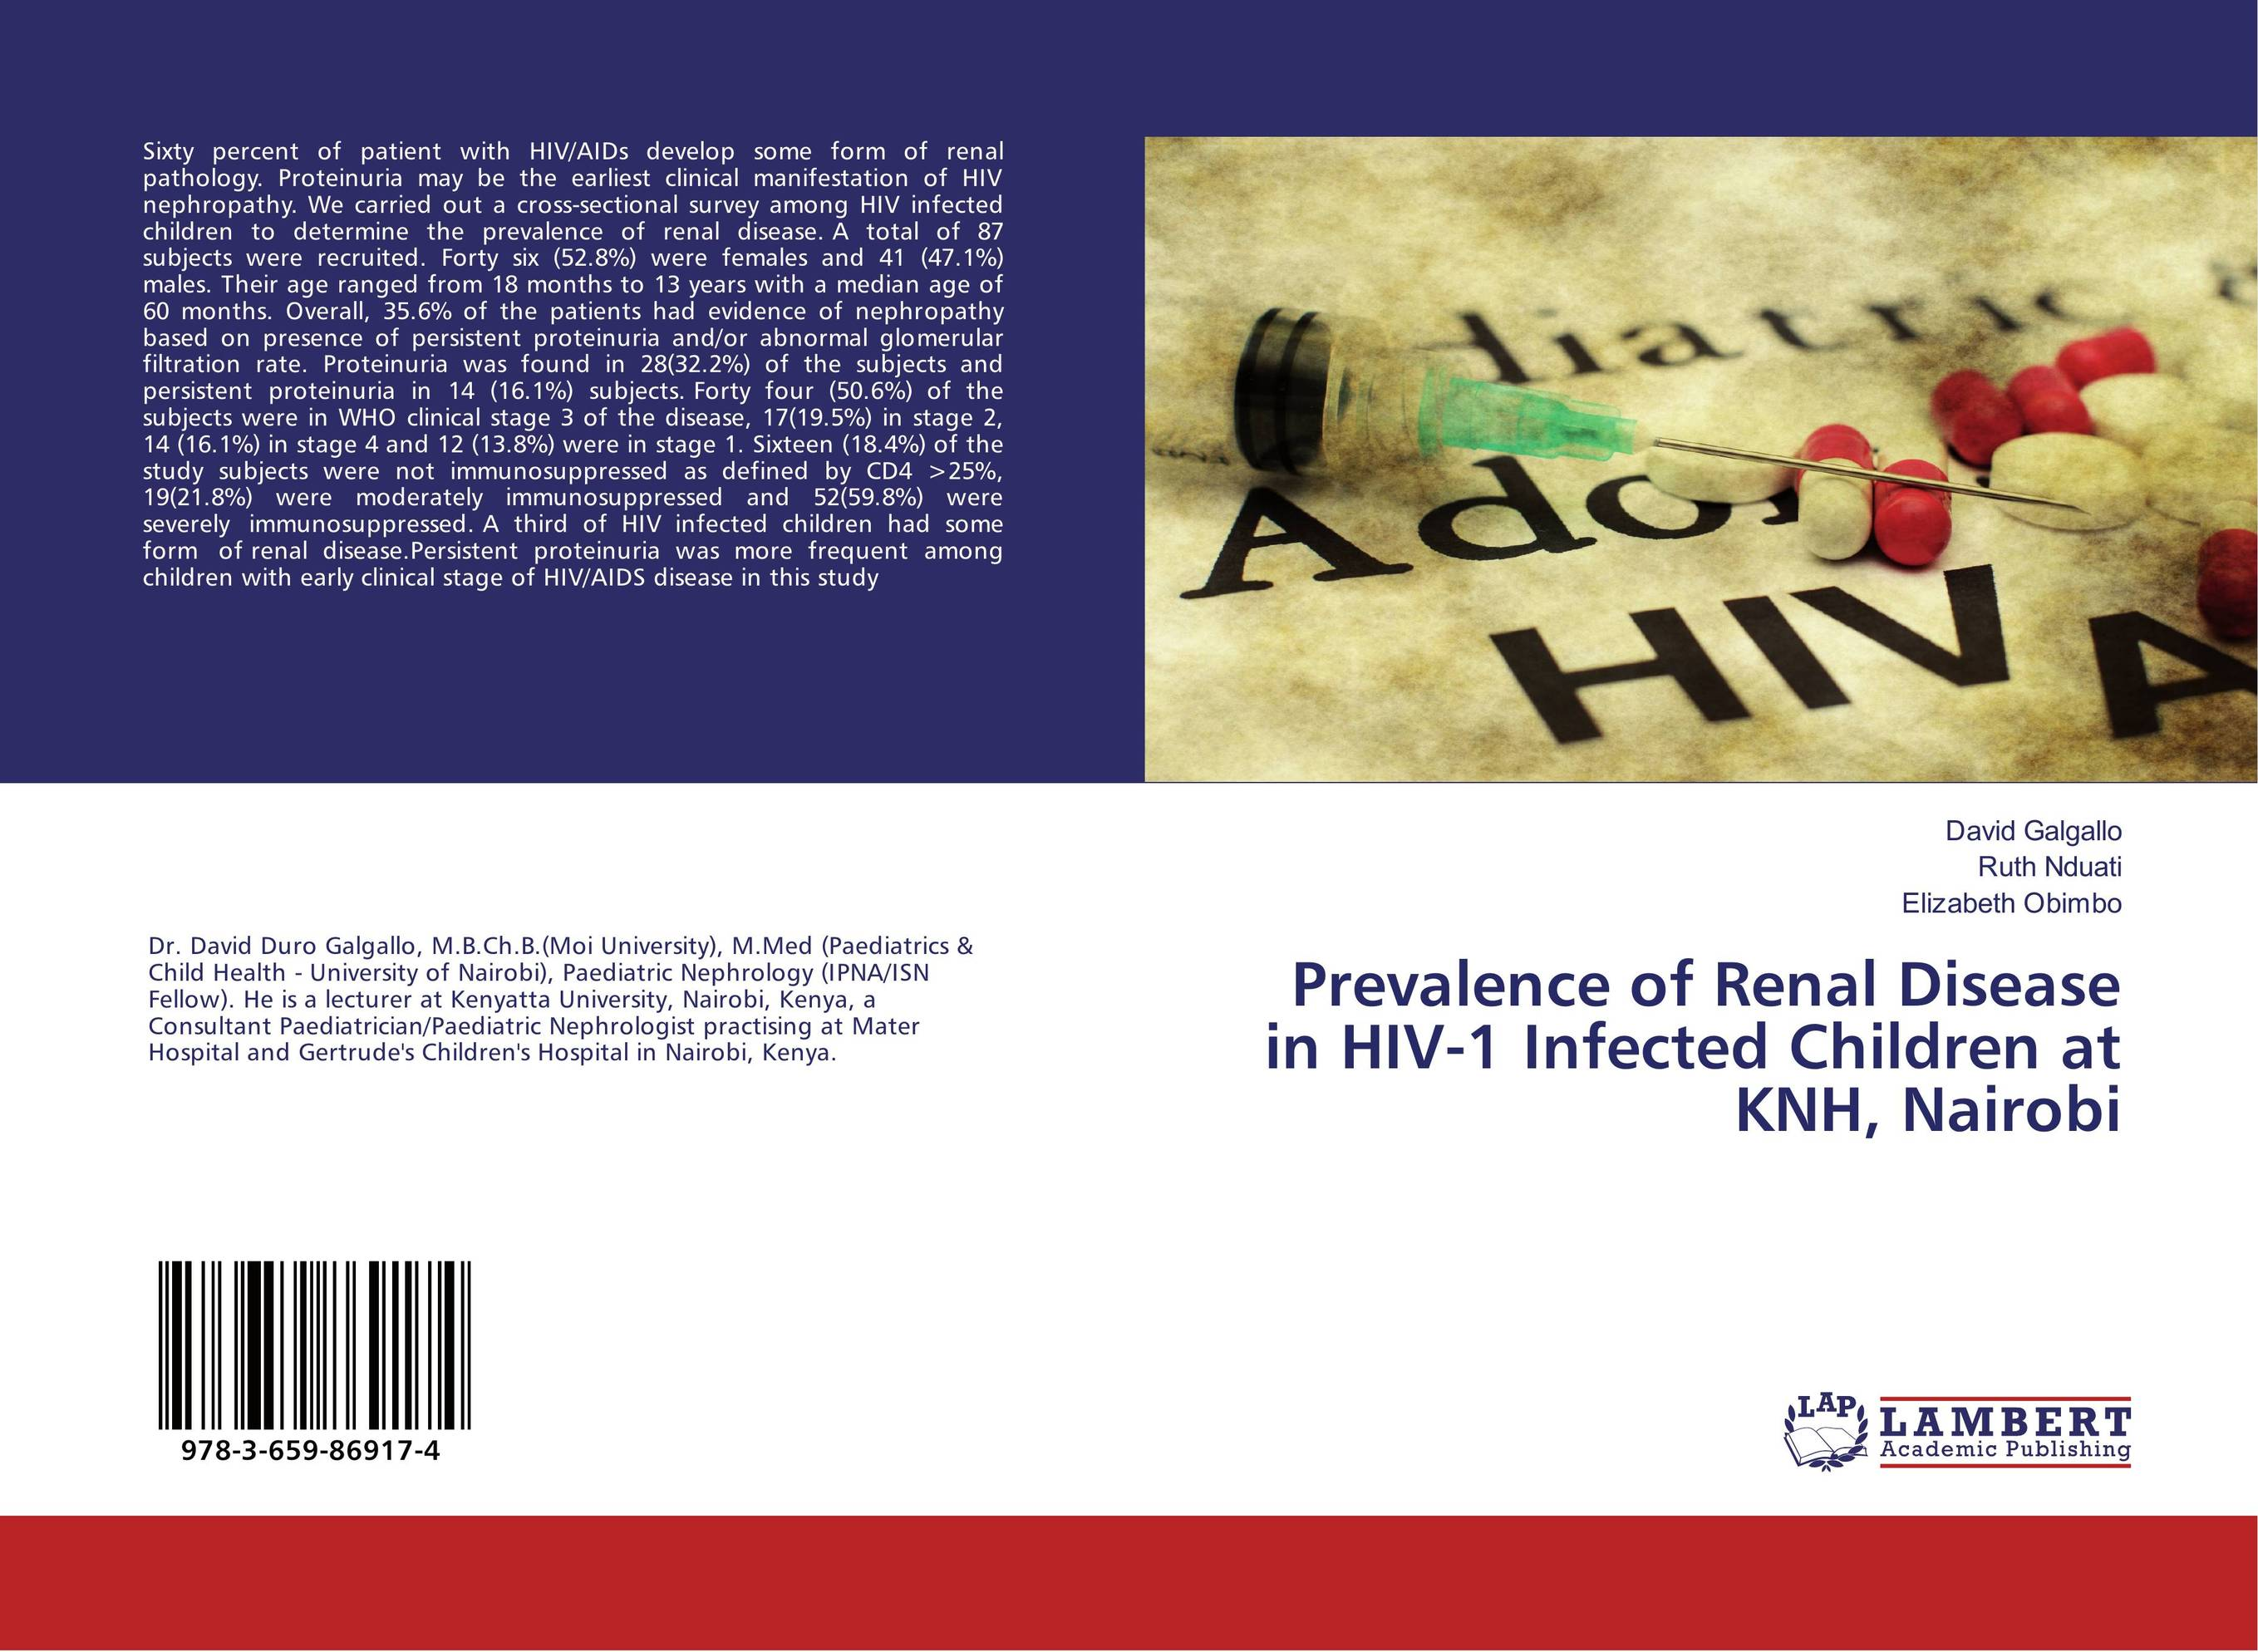 Prevalence of Renal Disease in HIV-1 Infected Children at KNH, Nairobi victoria wapf the disease of chopin a comprehensive study of a lifelong suffering